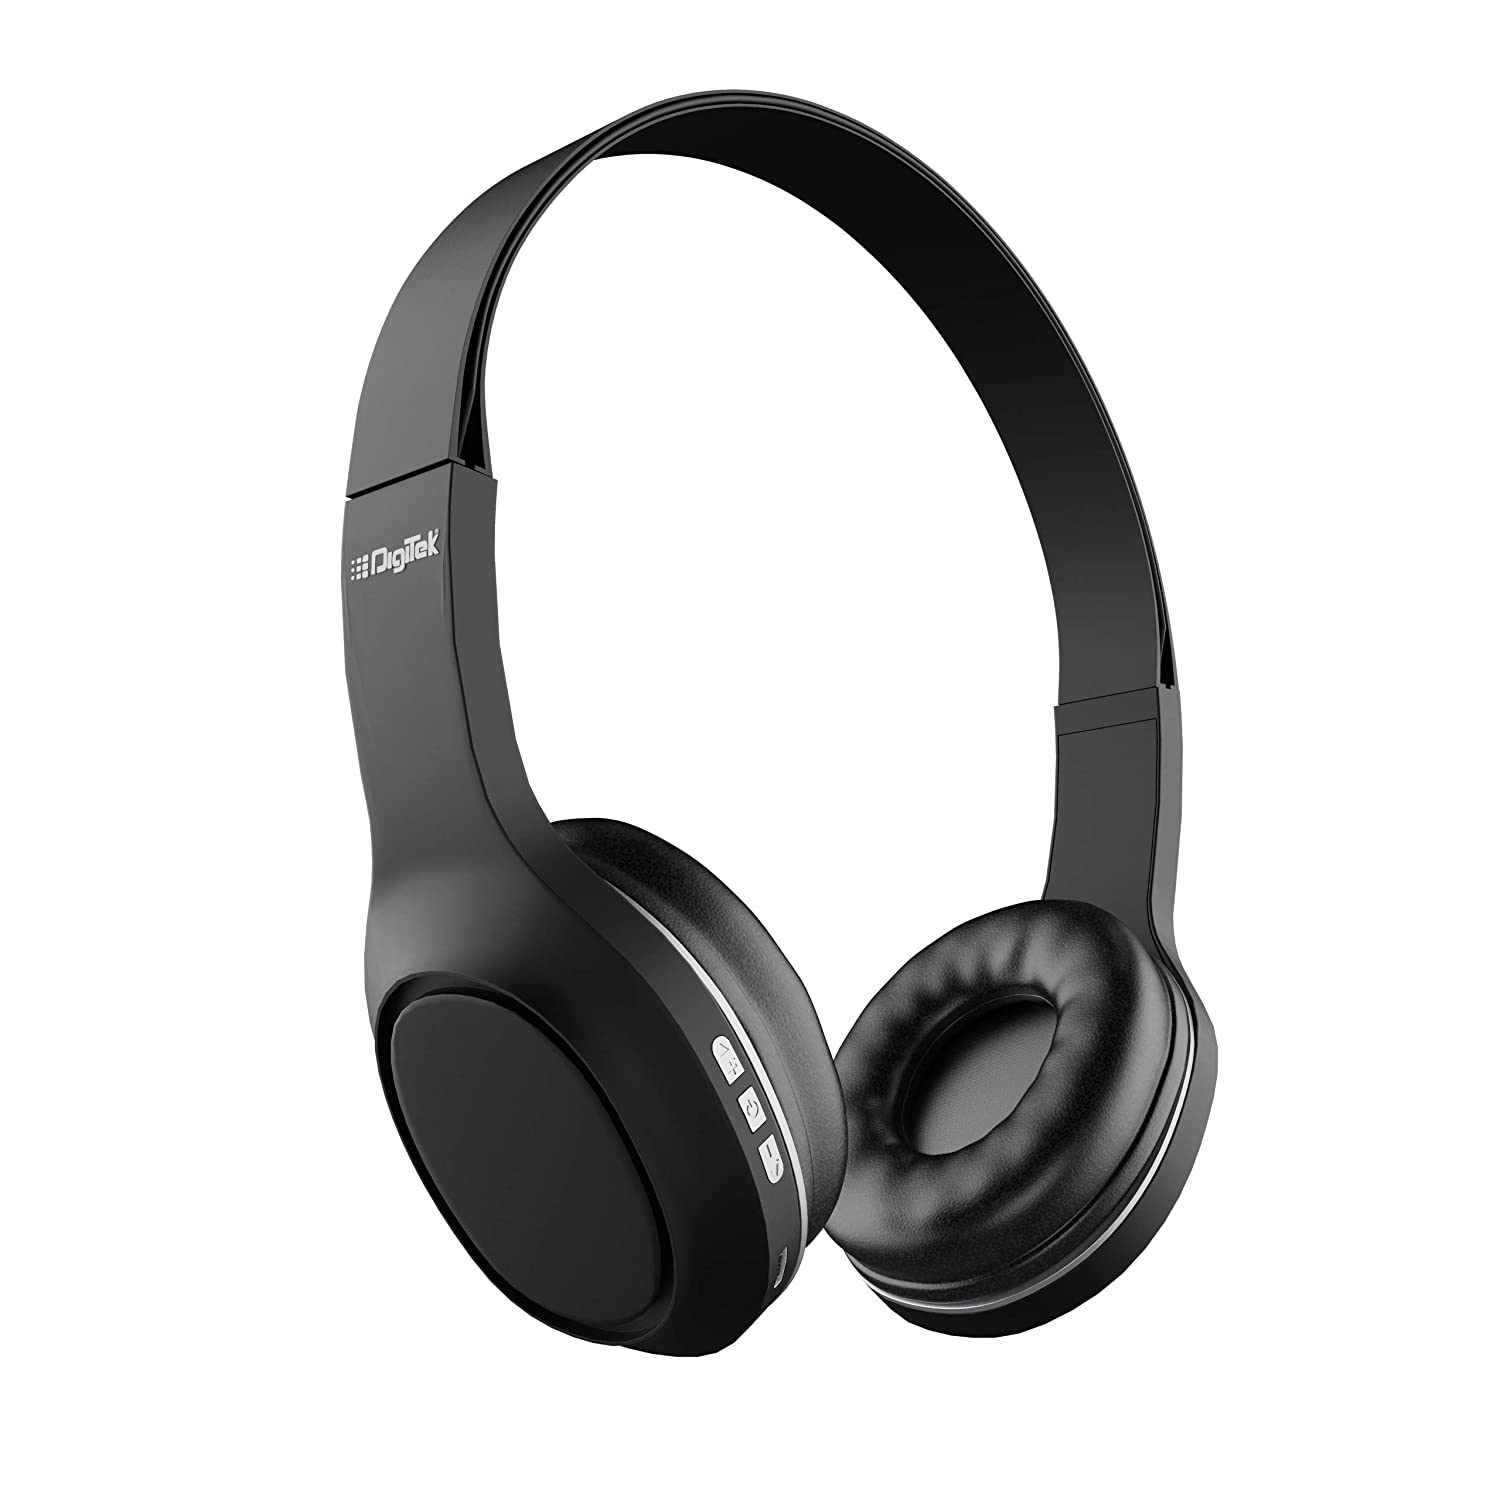 Digitek Bluetooth Headphone (DBH 006)